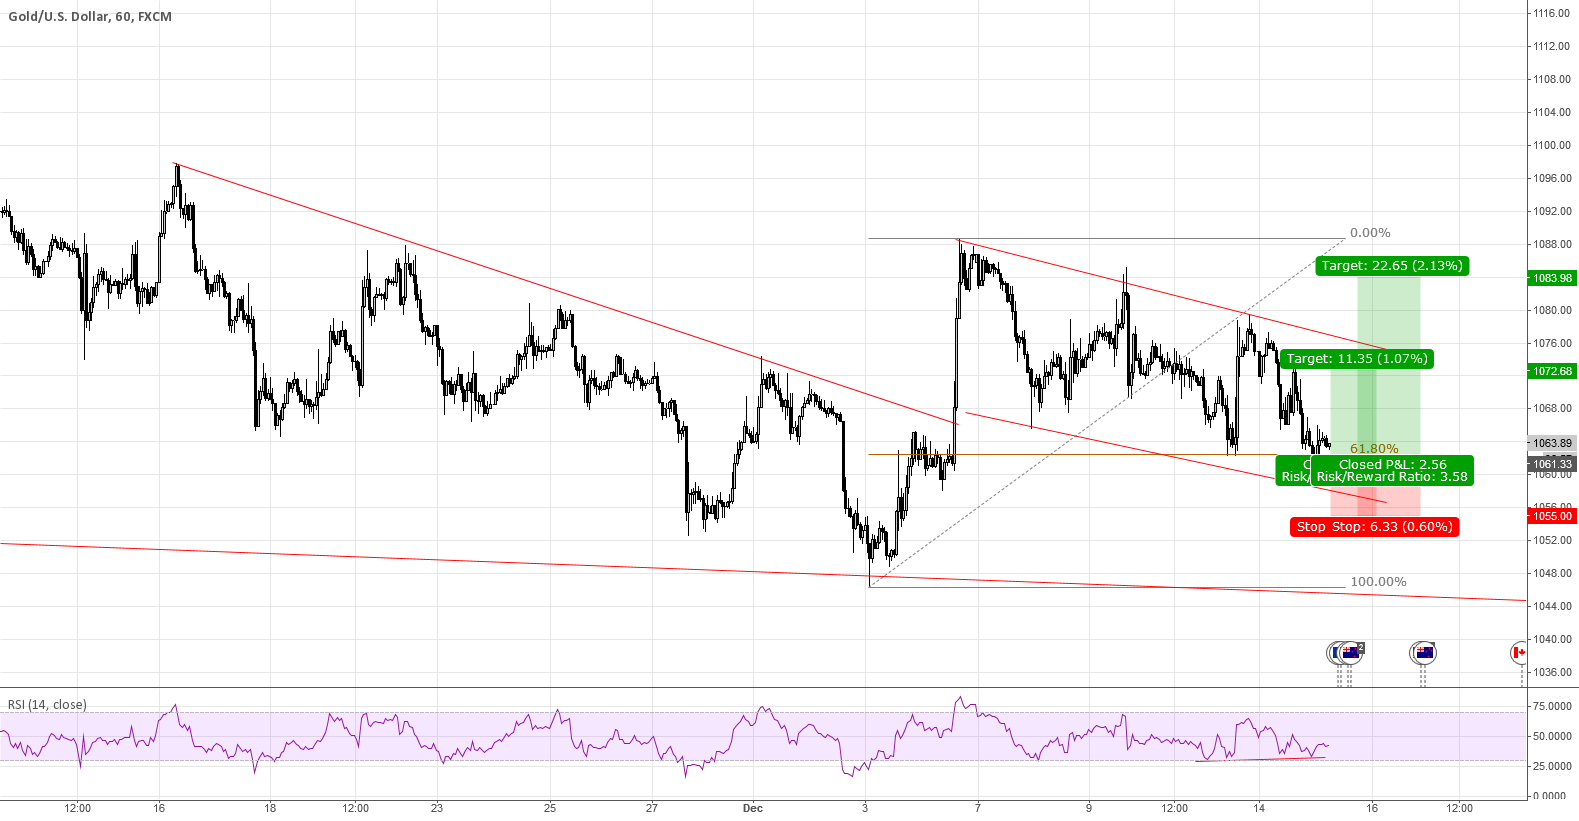 XAUUSD - Long from the Bottom of the Channel